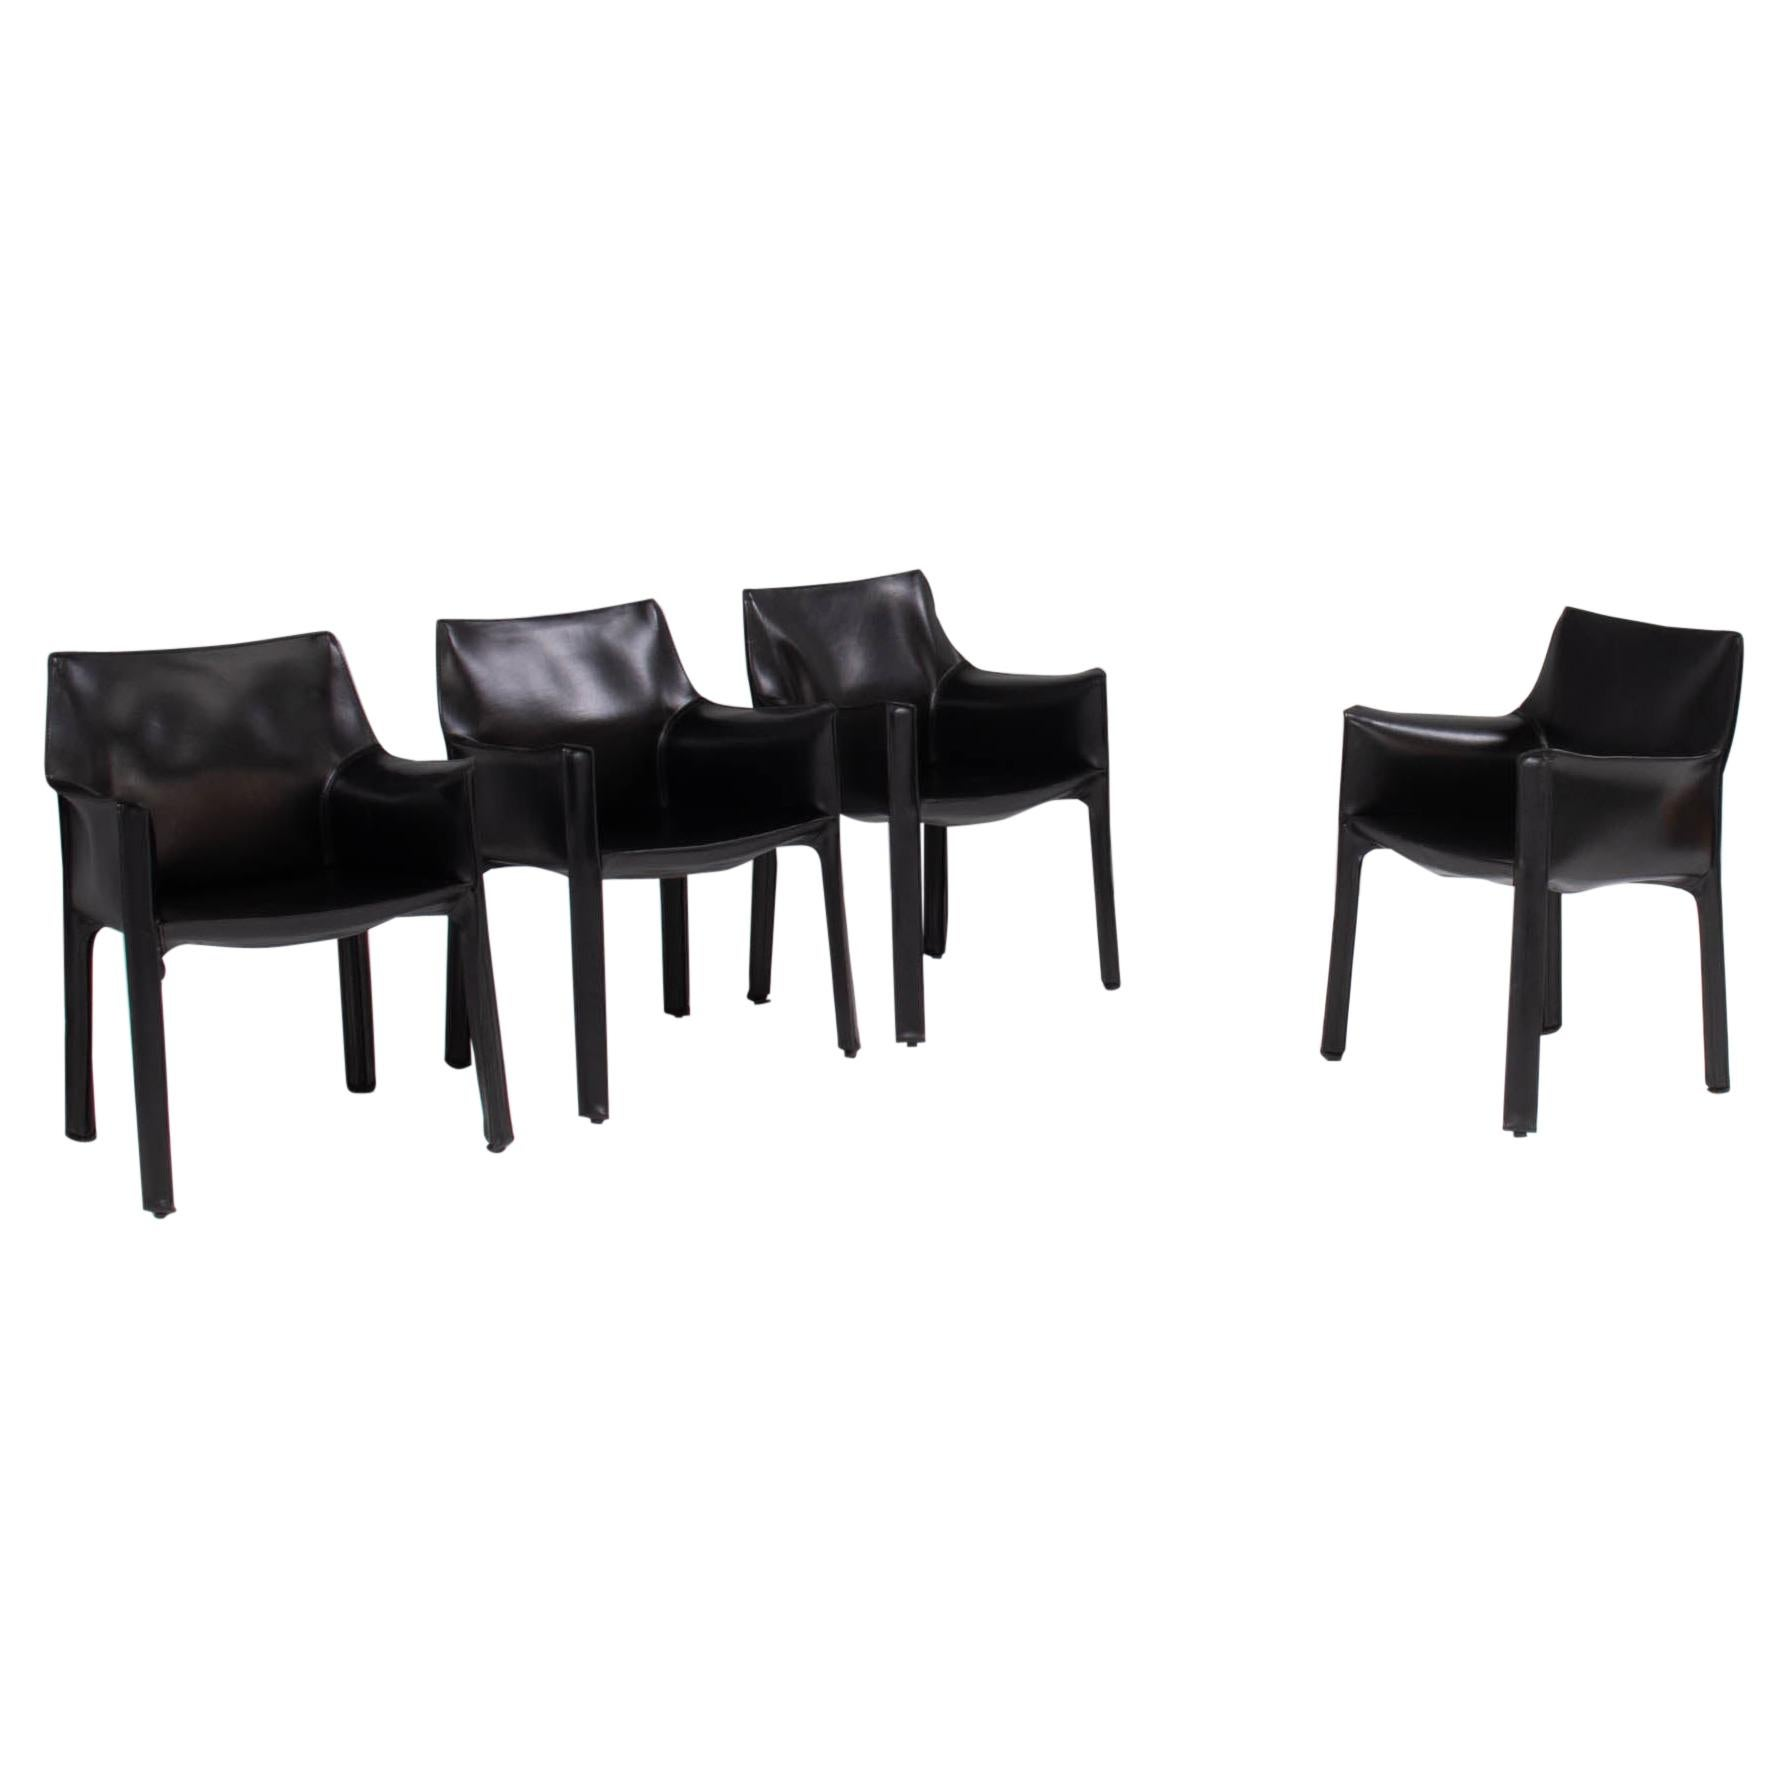 Cassina by Mario Bellini 'Cab' Black Leather Carver Dining Chairs, Set of Four